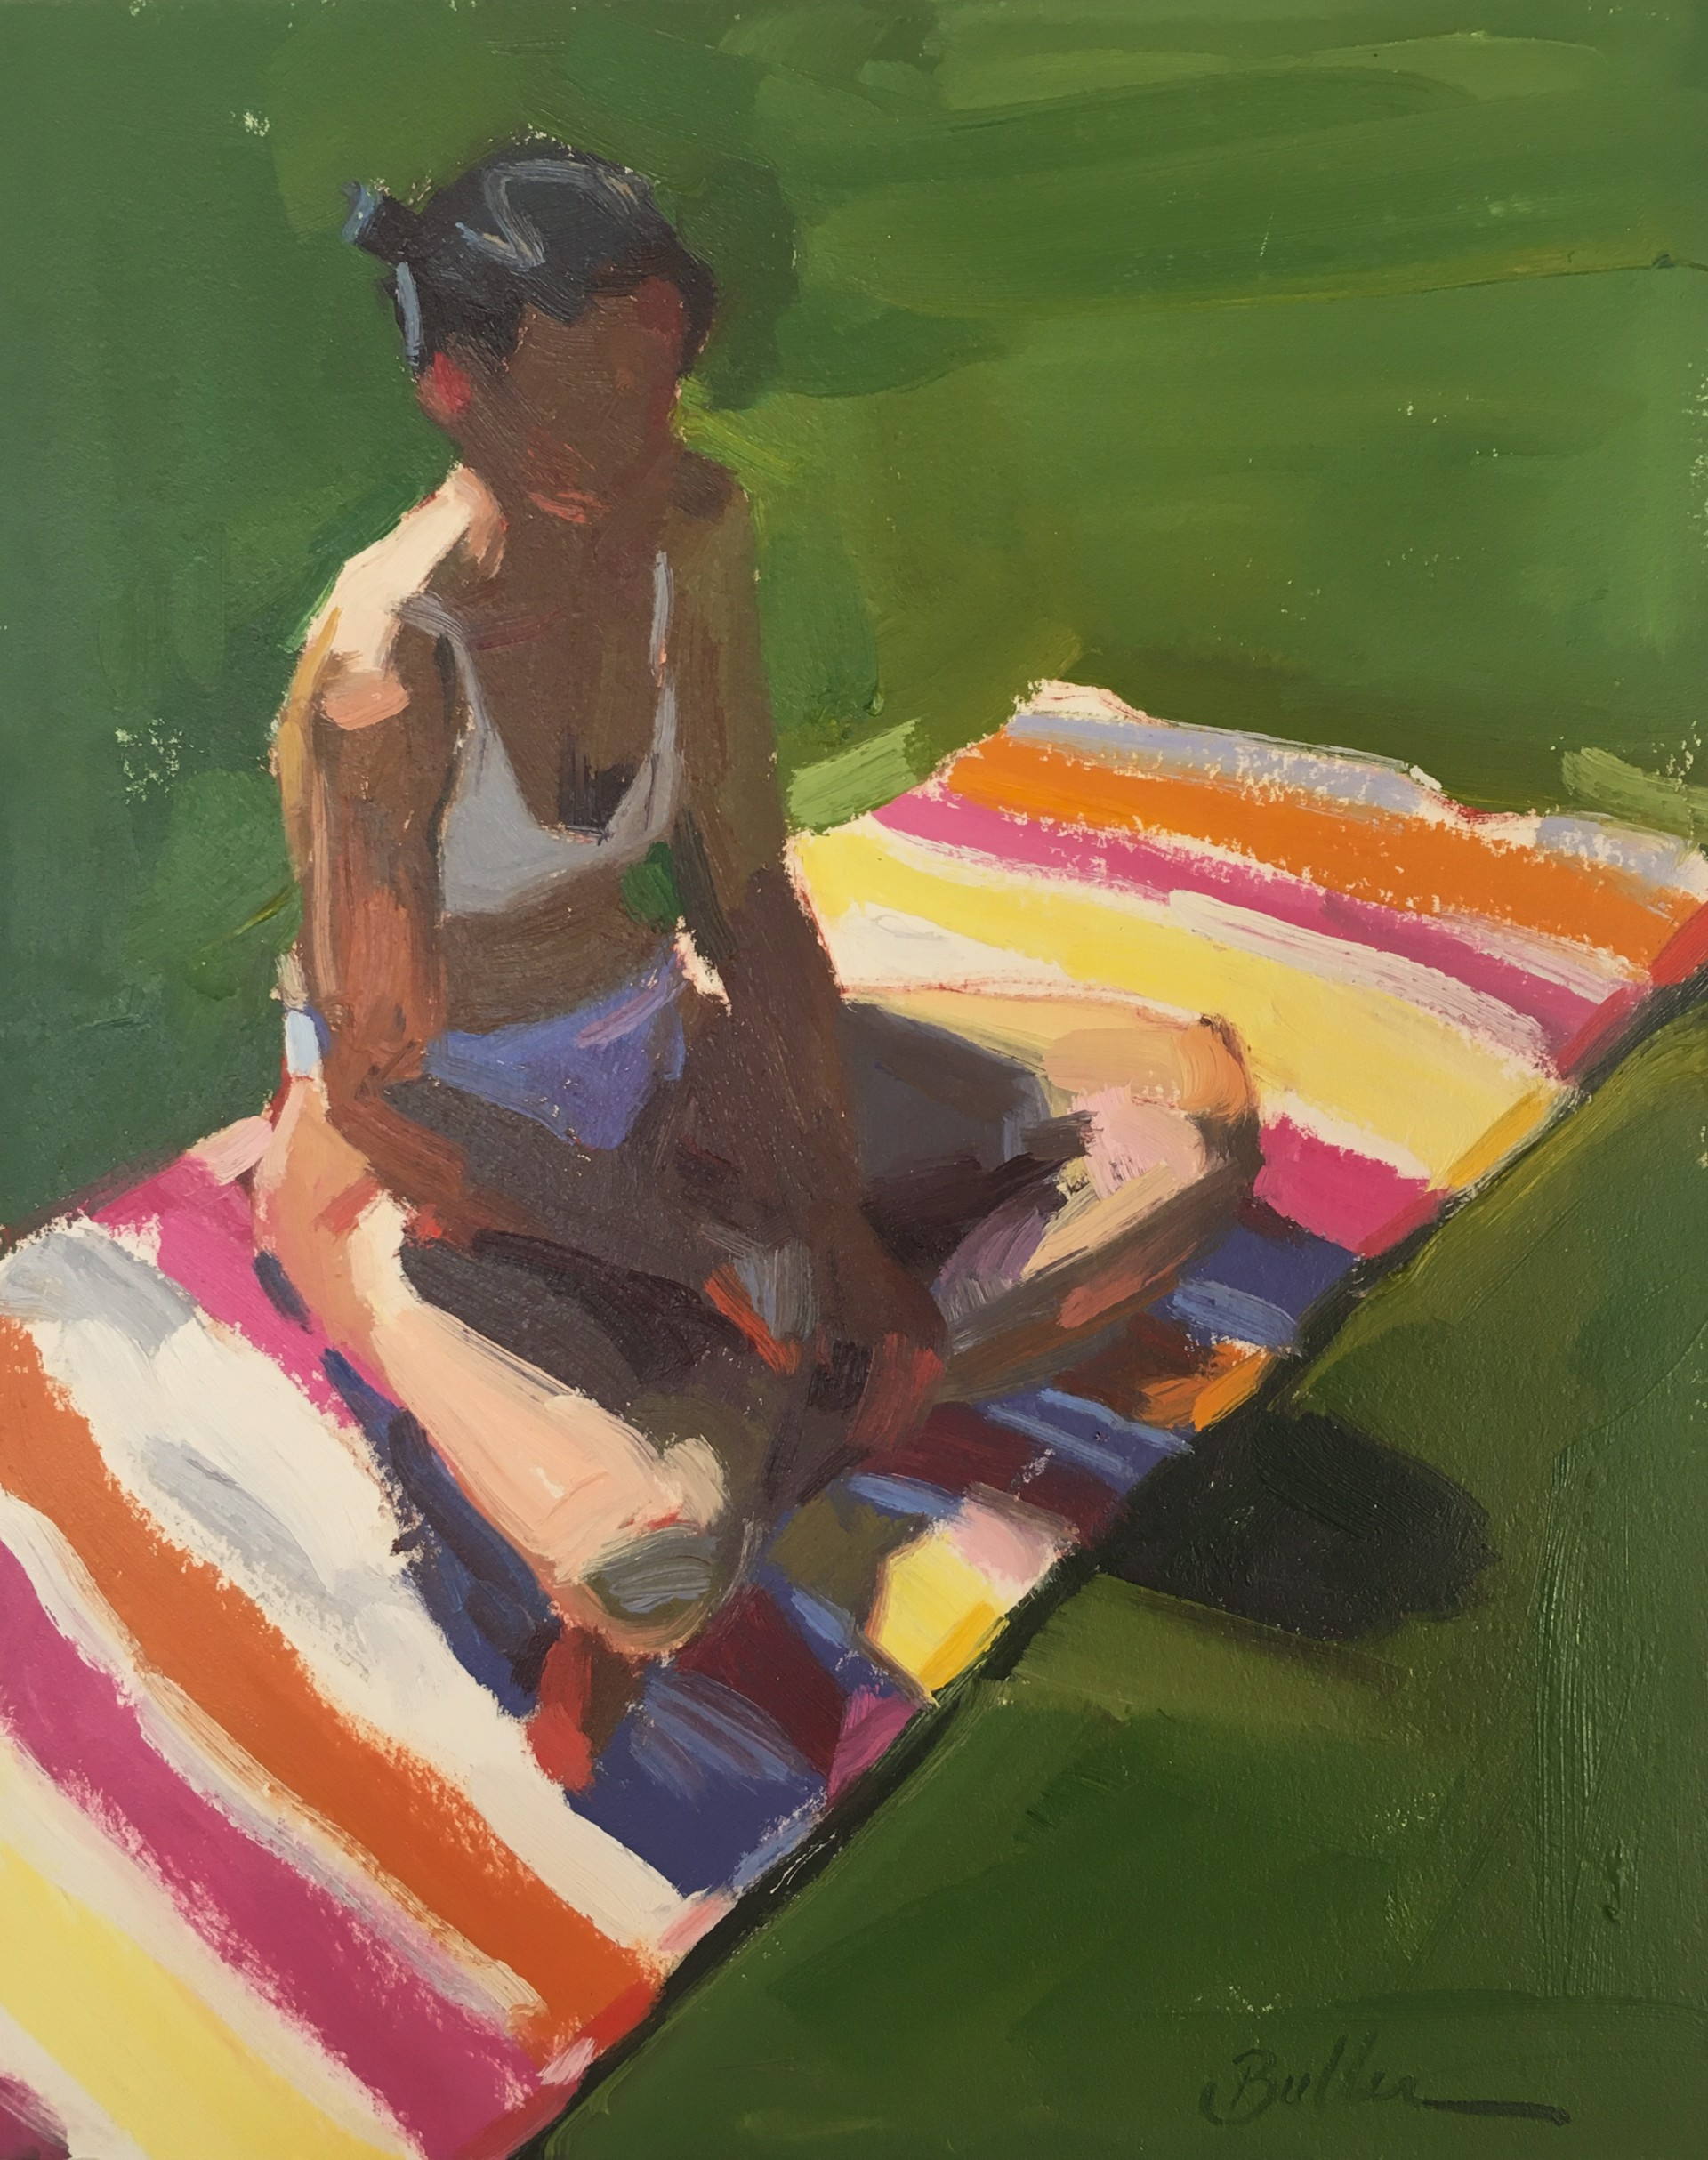 On the Lawn in the Sunlight by Samantha Buller